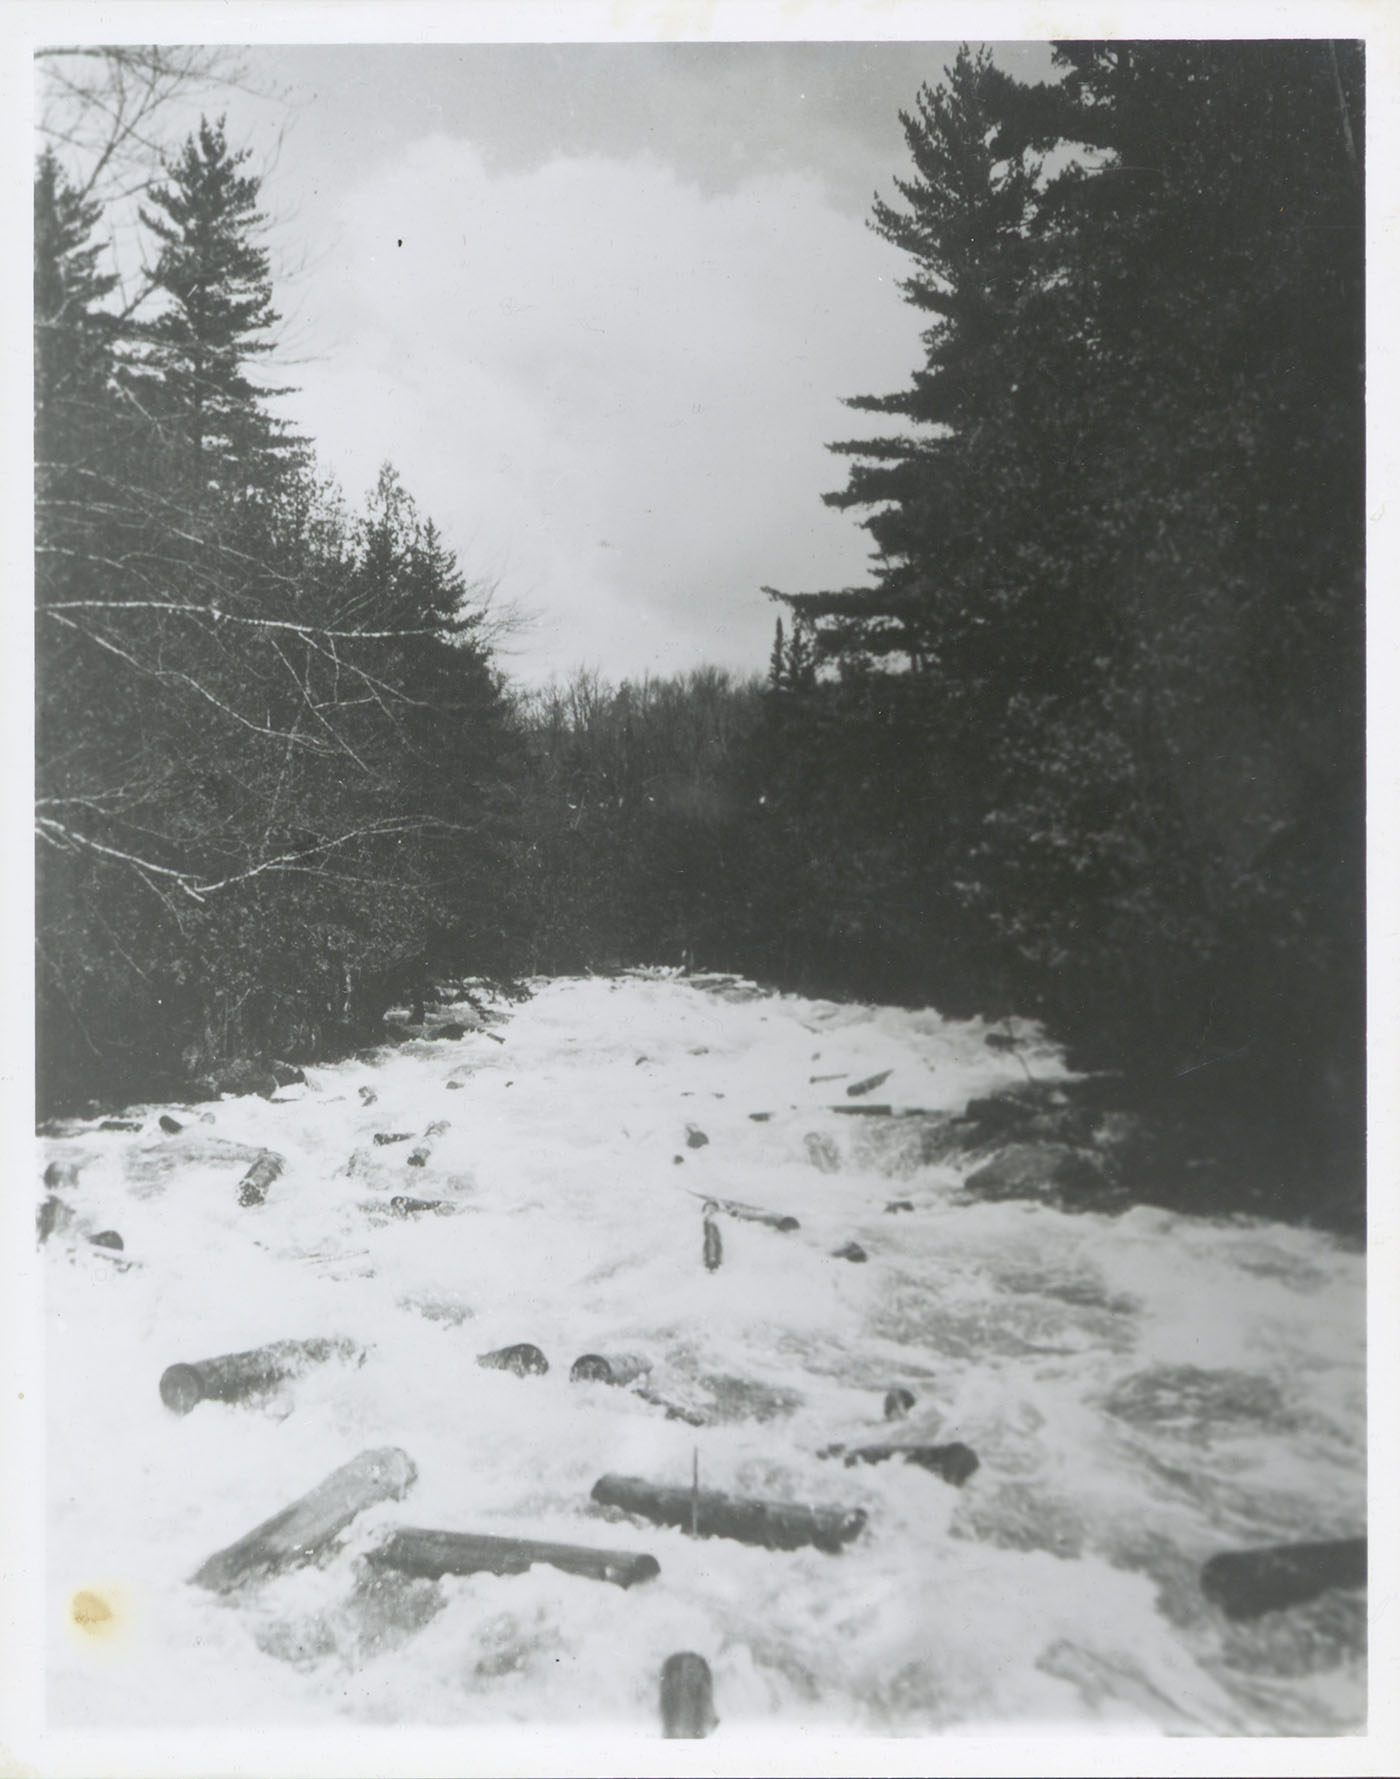 Hundreds of loose logs float down Henderson River damaging the shore line, May 1931. Bill Gluesing and Paul Schaefer took this on a trip to photograph Indian Pass from Henderson Lake.